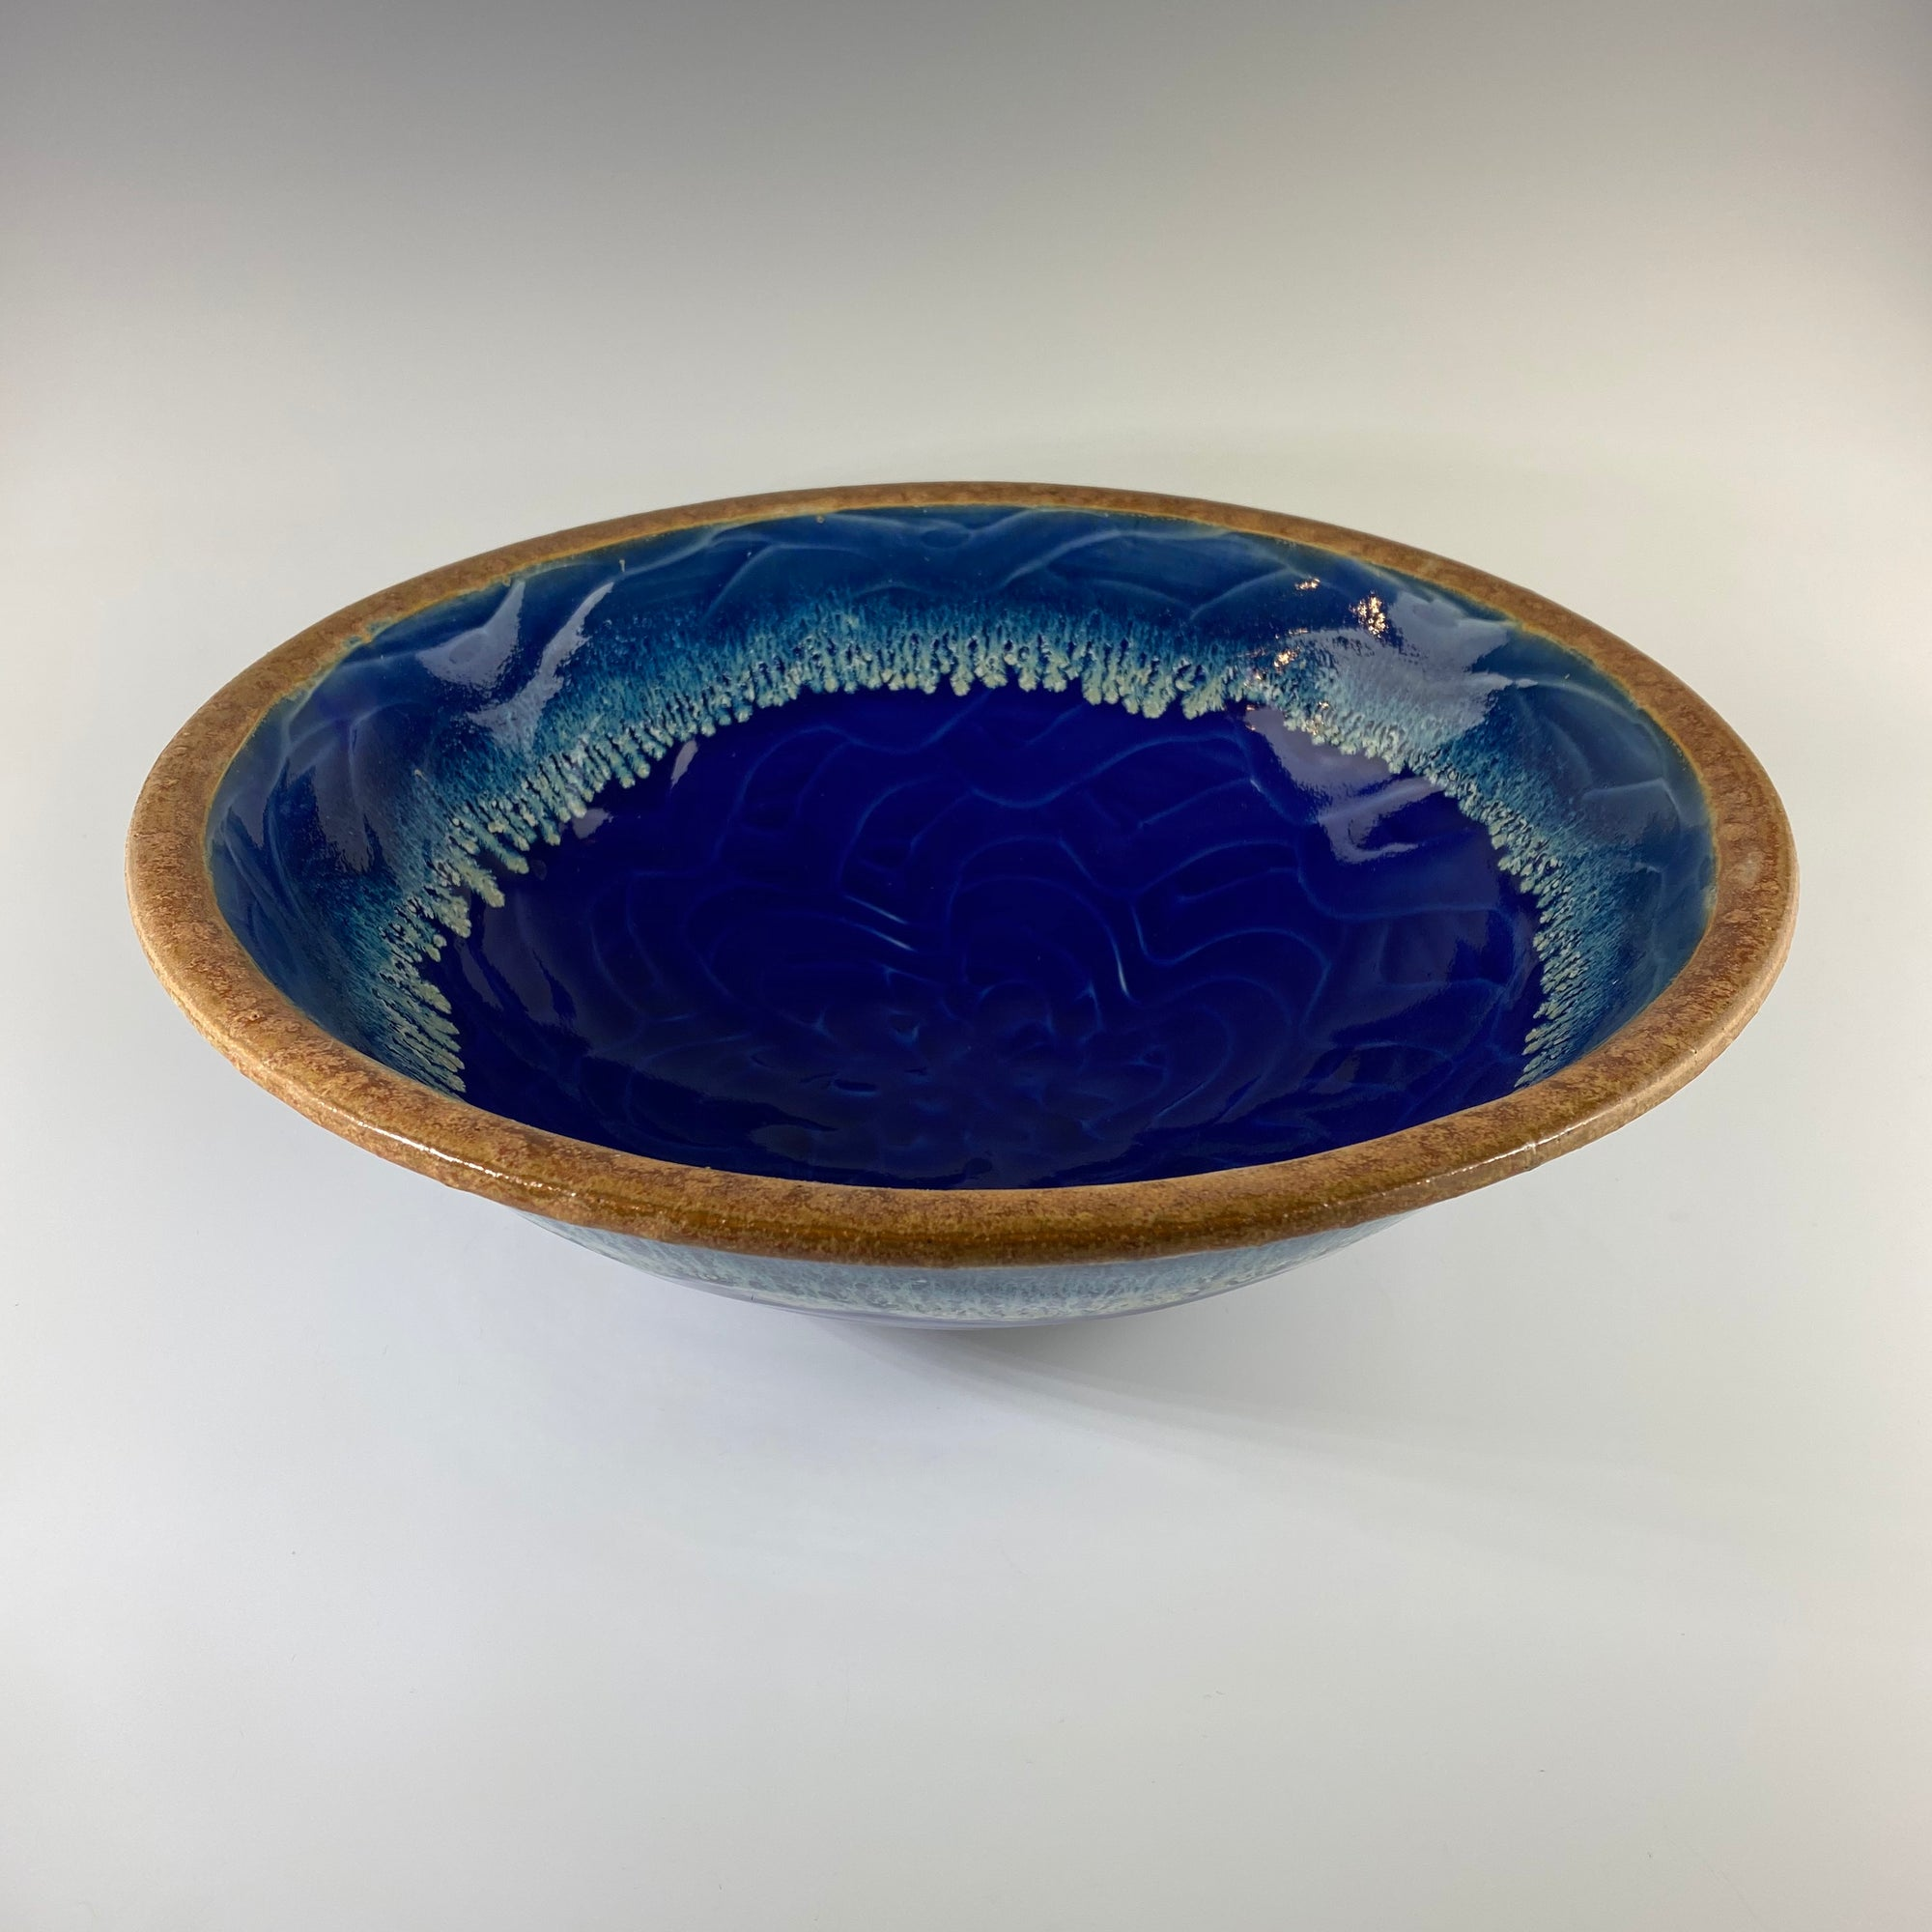 "Medium Bowl - 11.5"" - Heart of the Home PA"